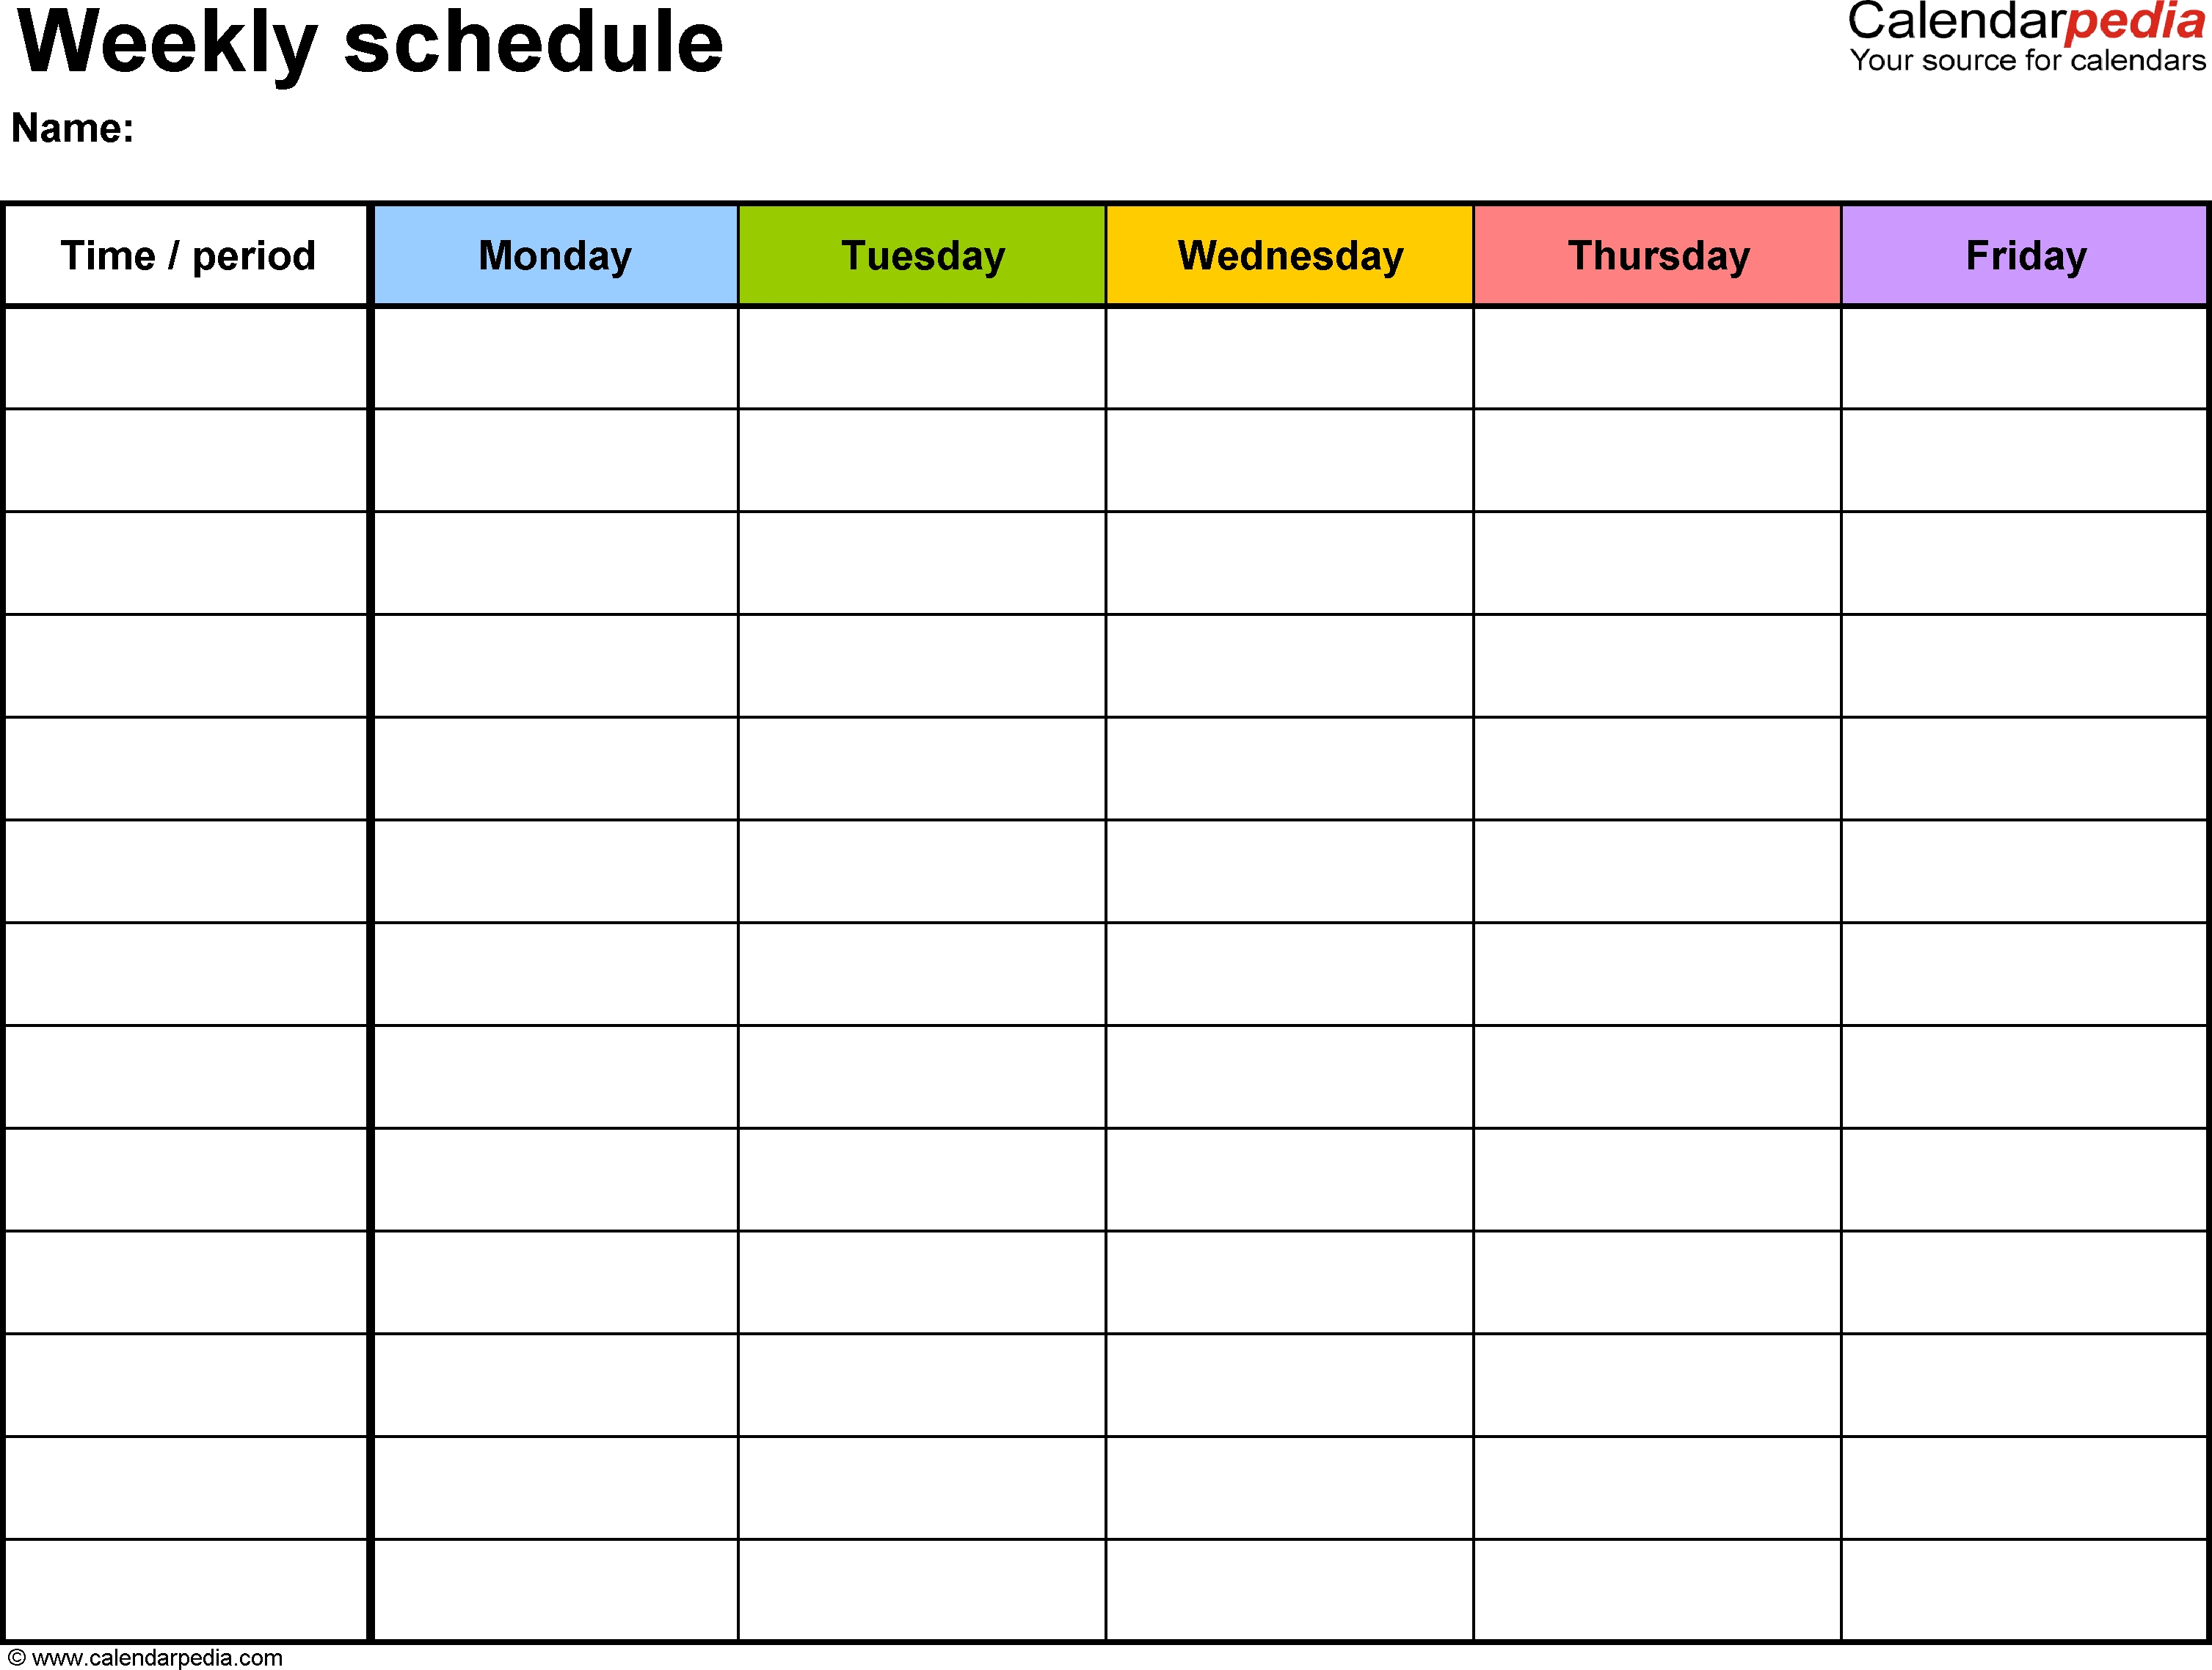 Free Weekly Schedule Templates For Pdf - 18 Templates Free Calendar Template Kindergarten